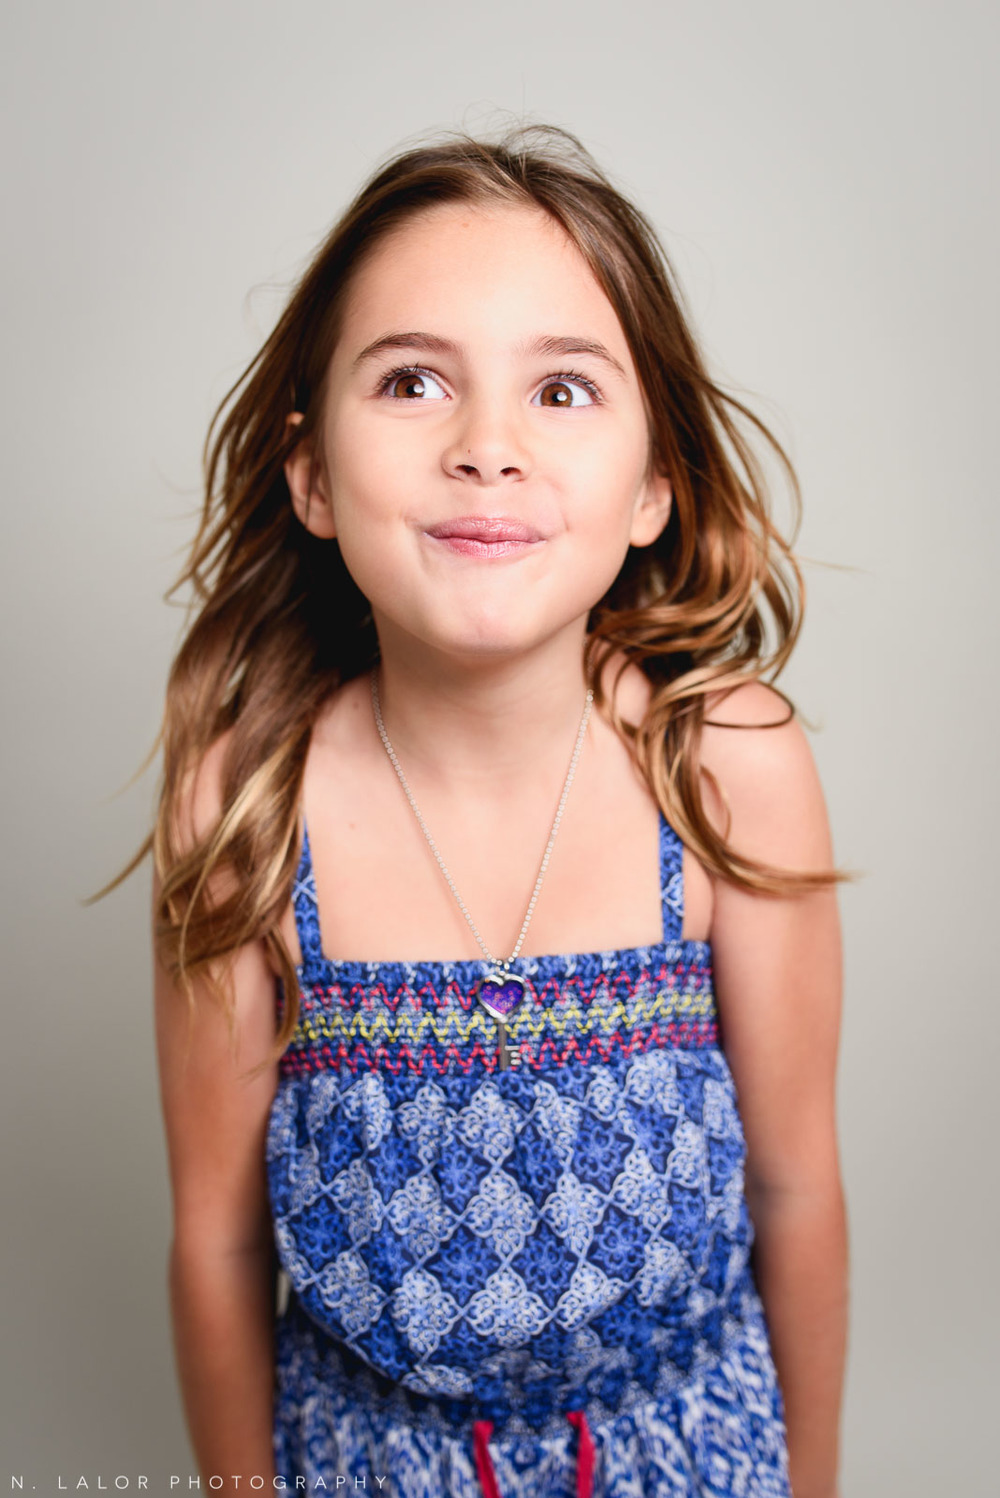 That mischievous smile! Editorial studio portrait of 6-year old girl by N. Lalor Photography in Greenwich, Connecticut.